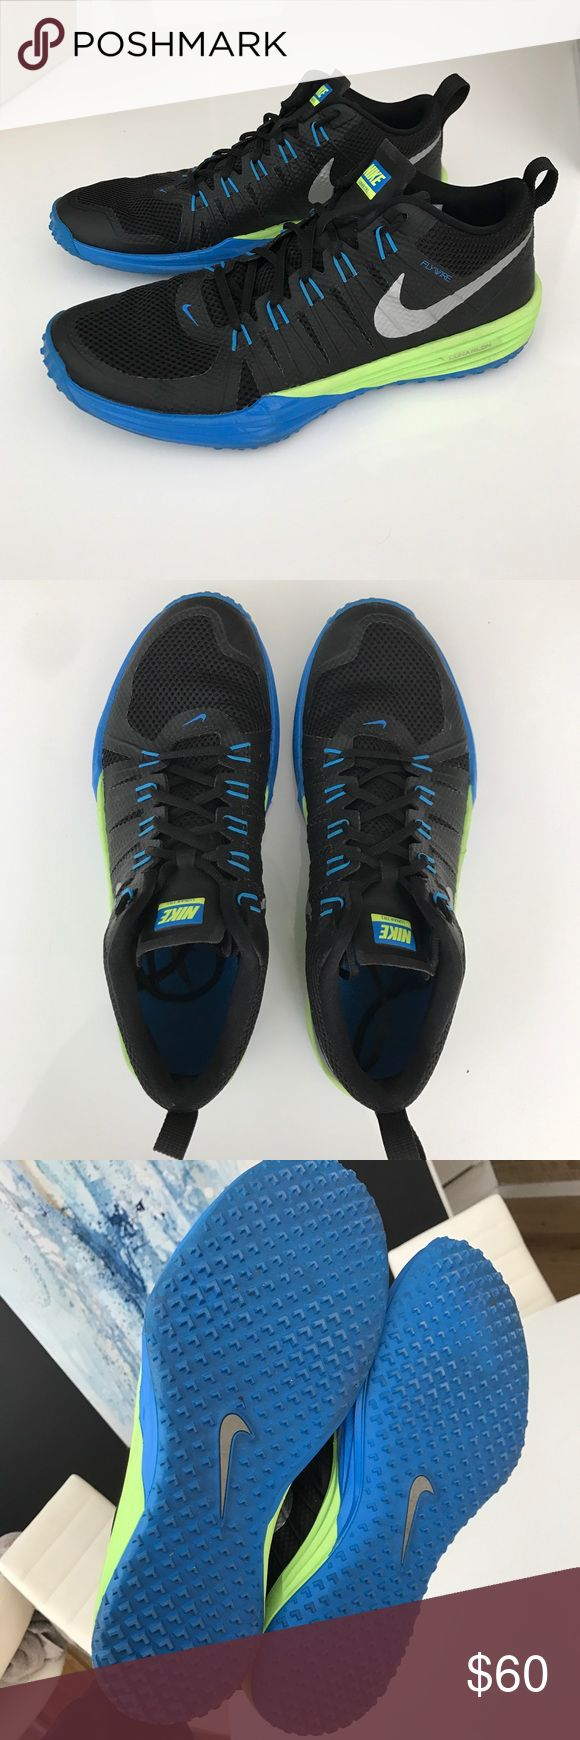 Nike Lunar TR1 (Black/Blue/Volt) Seldom worn for they're a half size too big for me. Nike Shoes Sneakers